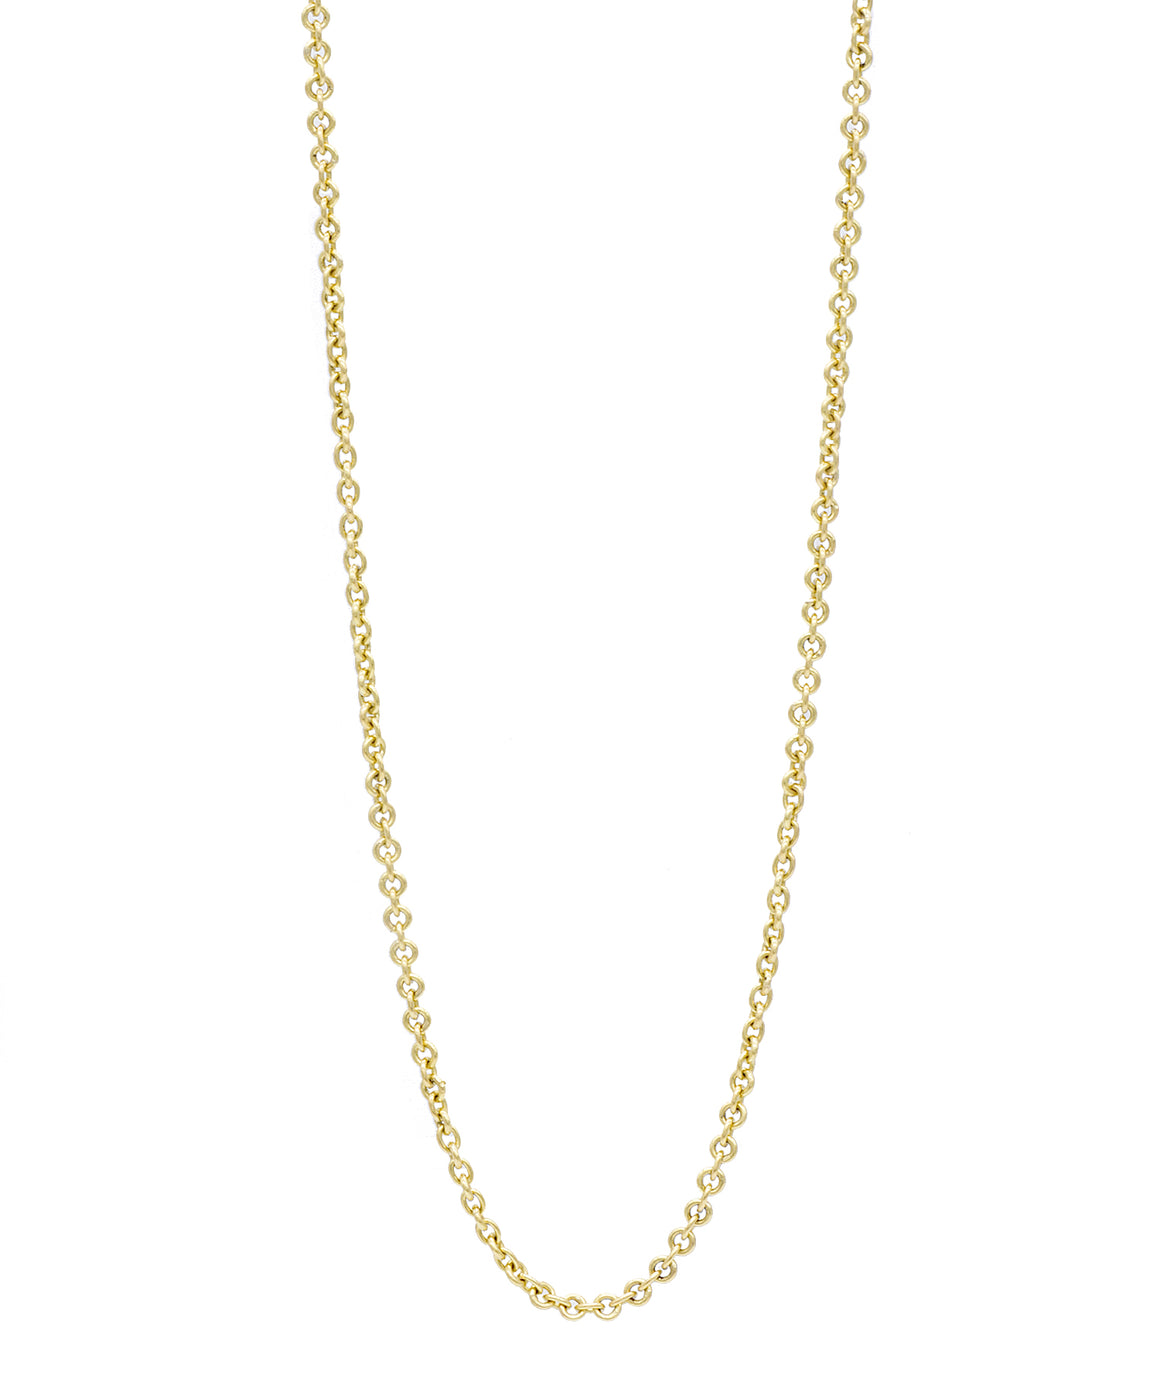 Long Yellow Gold Link Chain - Lesley Ann Jewels